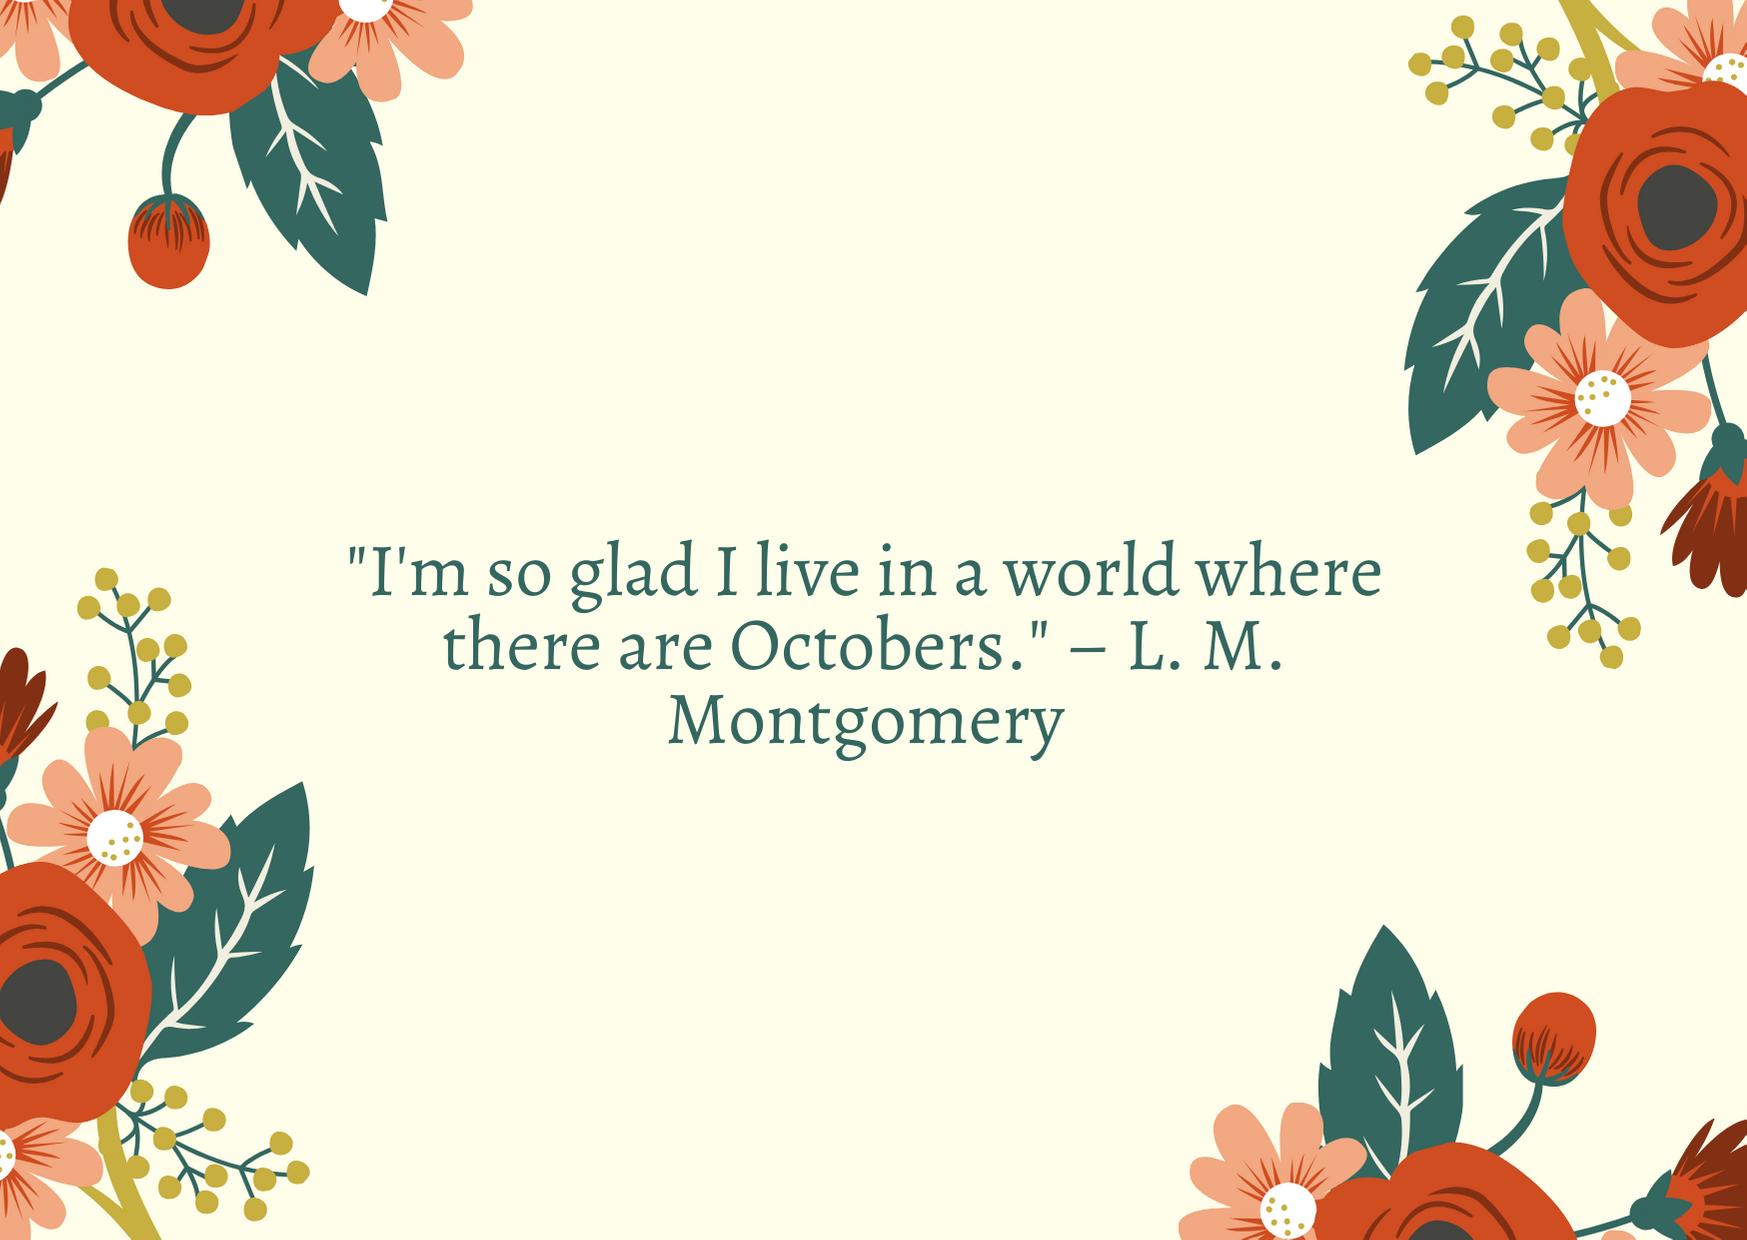 """I'm so glad I live in a world where there are Octobers."" – L. M. Montgomery"